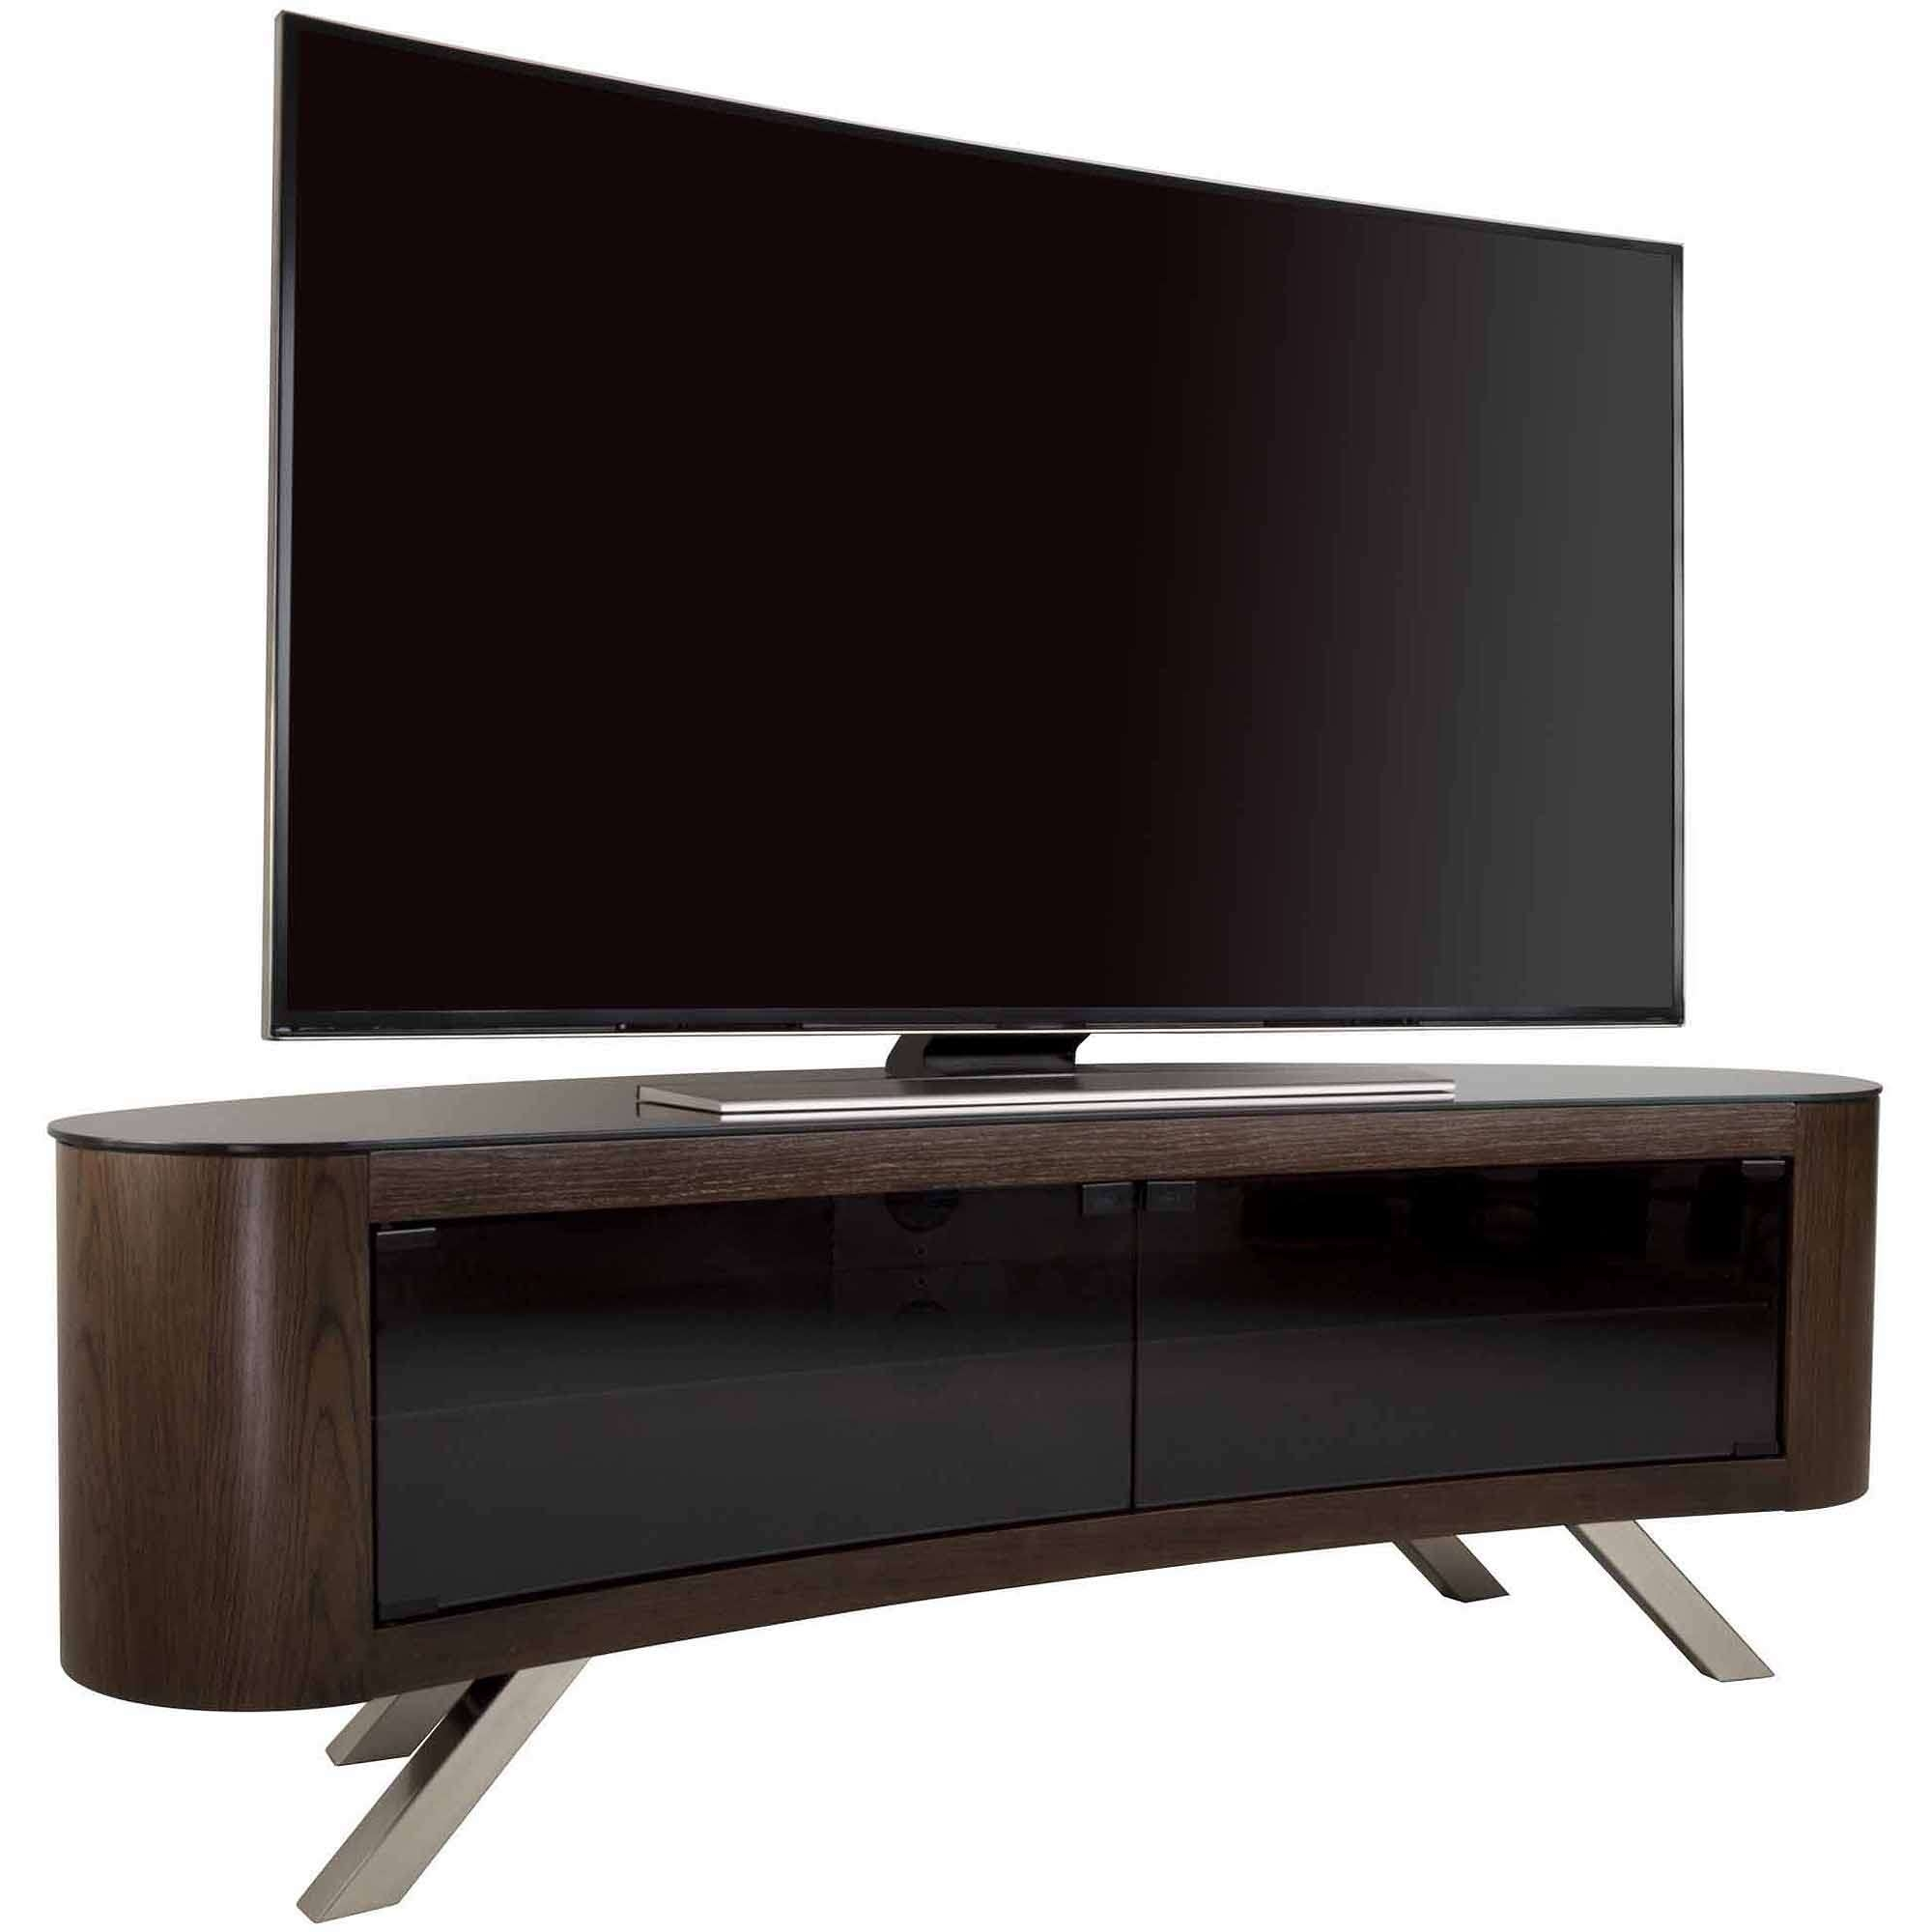 Tv Stands For Inch Avf Bay Curved Stand Tvs Up To 0e2b4cfbe0e8 1 With Tv Stands For 70 Inch Tvs (View 3 of 20)